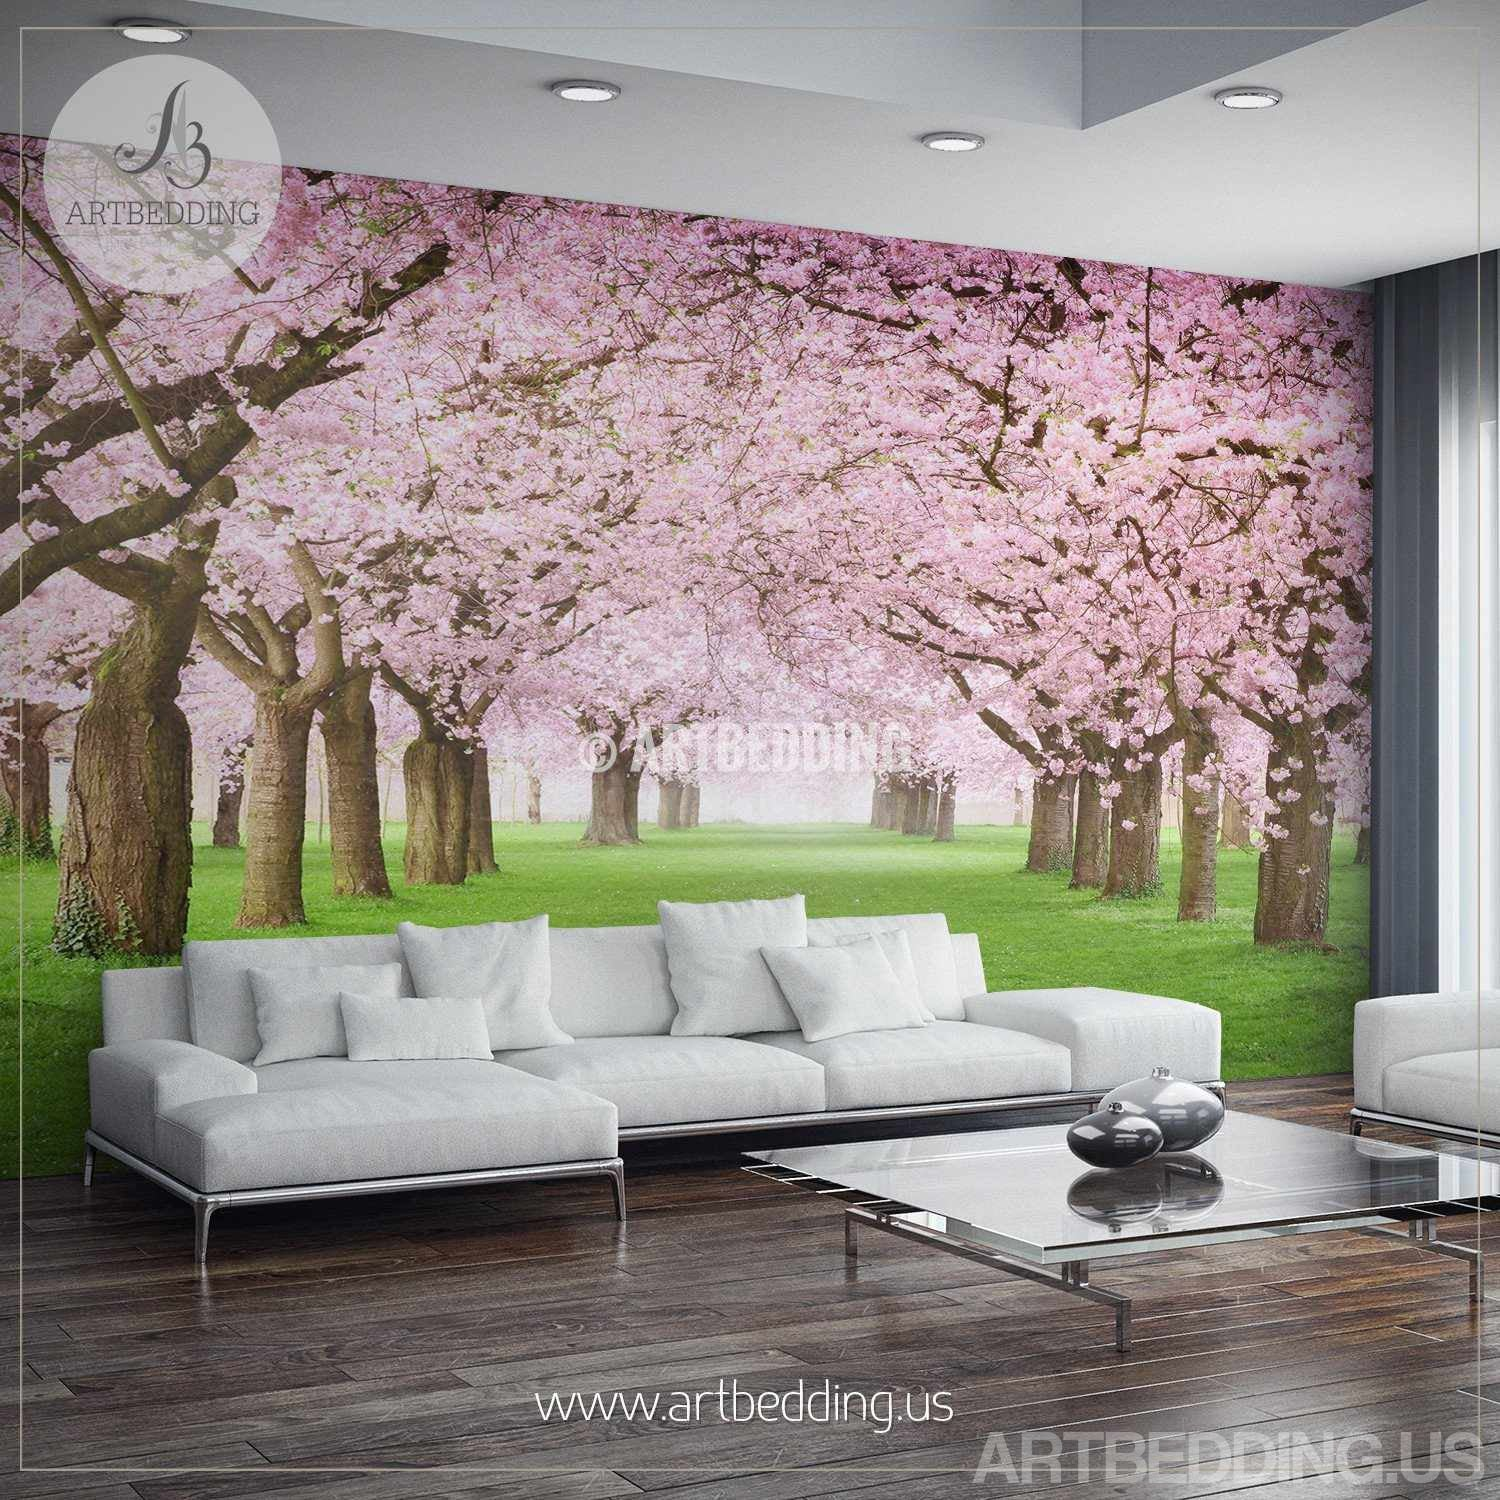 Nature Wall Mural Chery Blossom Pathway On A Green Lawn, Cherry Blossom  Photo Mural Self ... Part 41